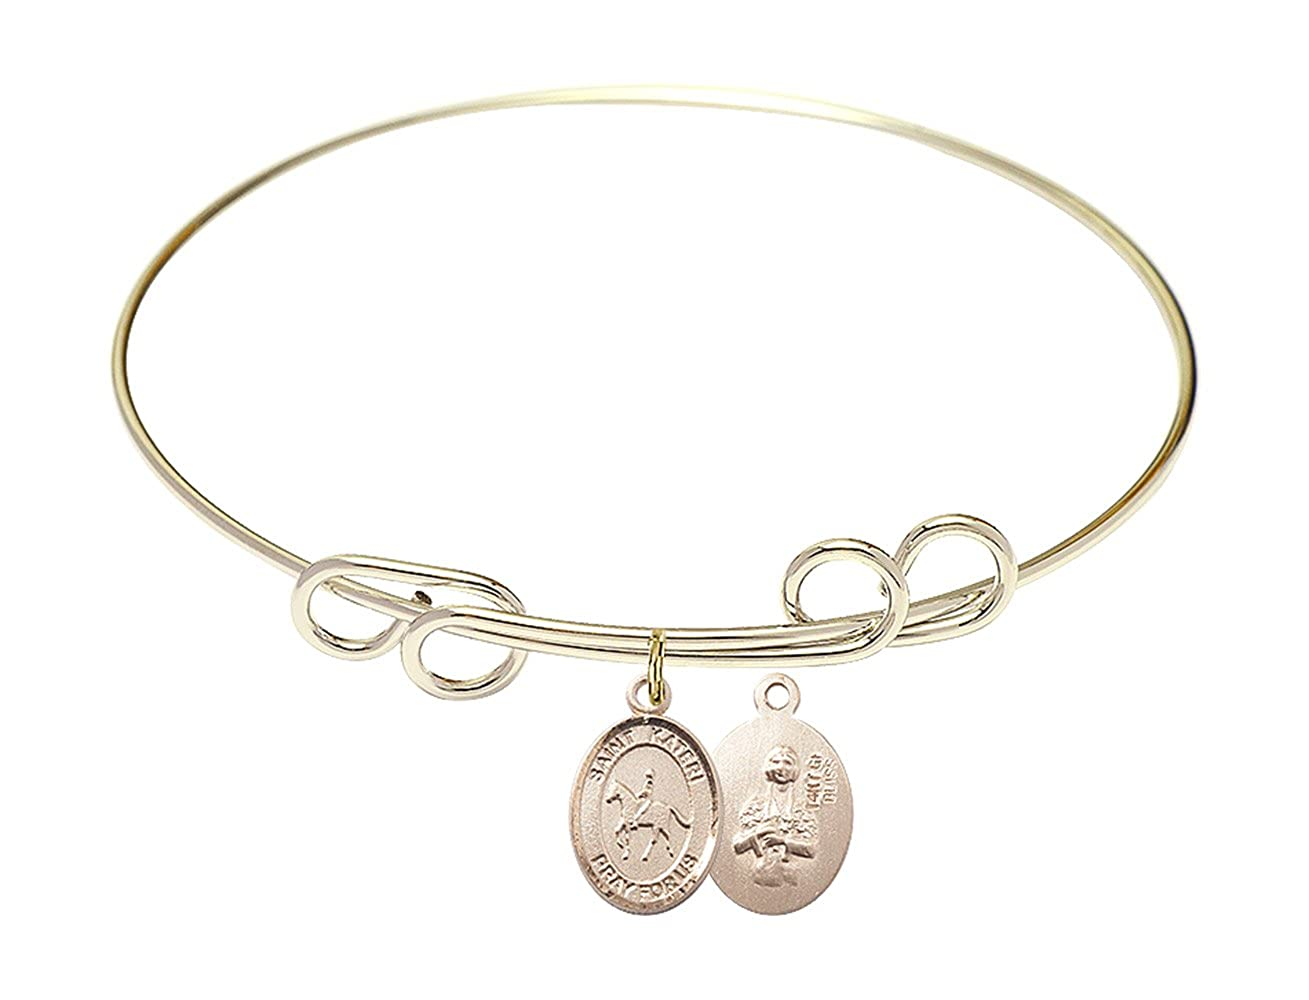 Kateri//Equestrian Charm. DiamondJewelryNY Double Loop Bangle Bracelet with a St